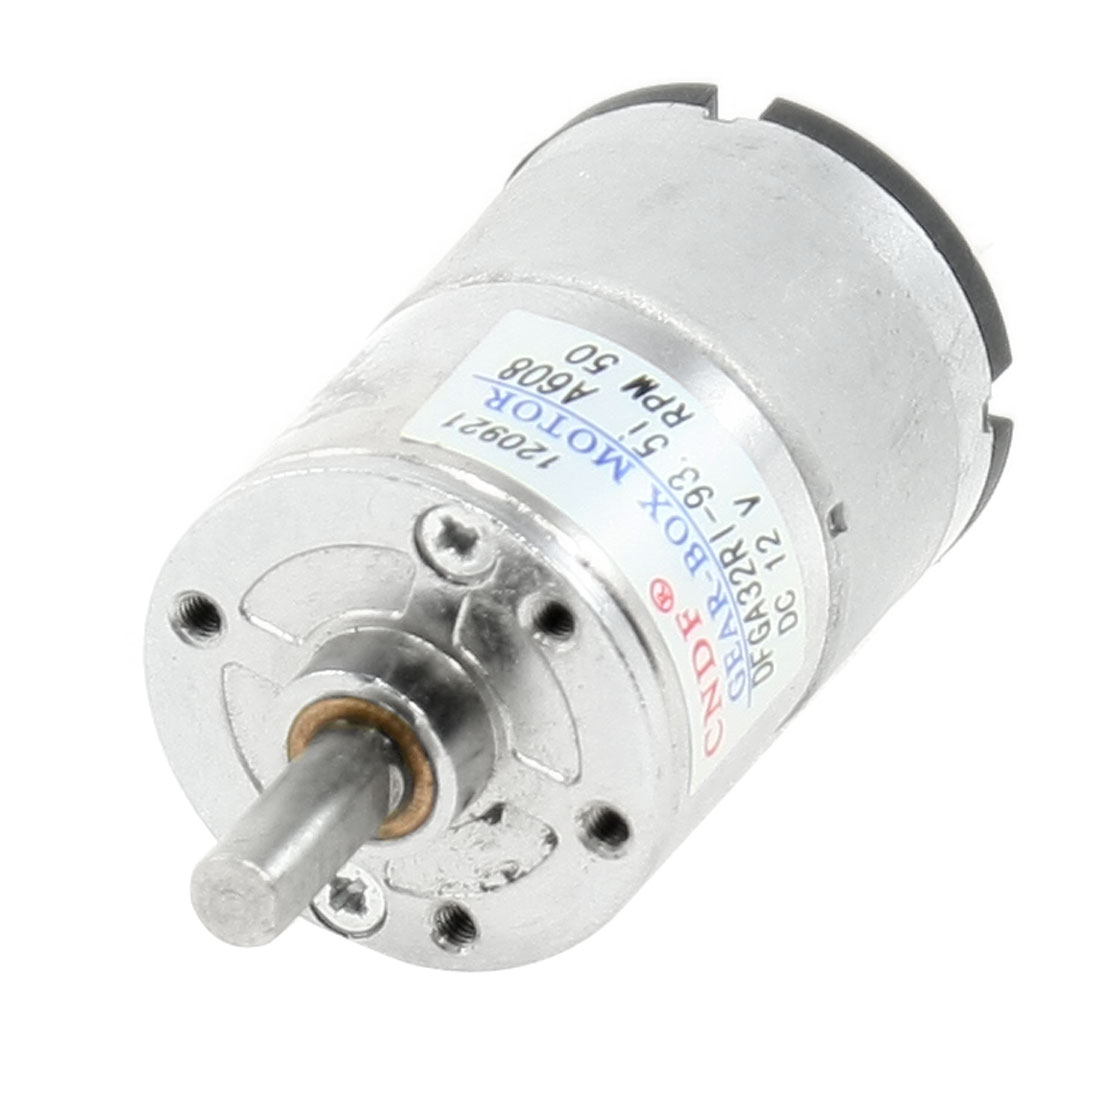 50RPM 12VDC 2P 6mm Shaft Diameter Electric Geared Box Motor